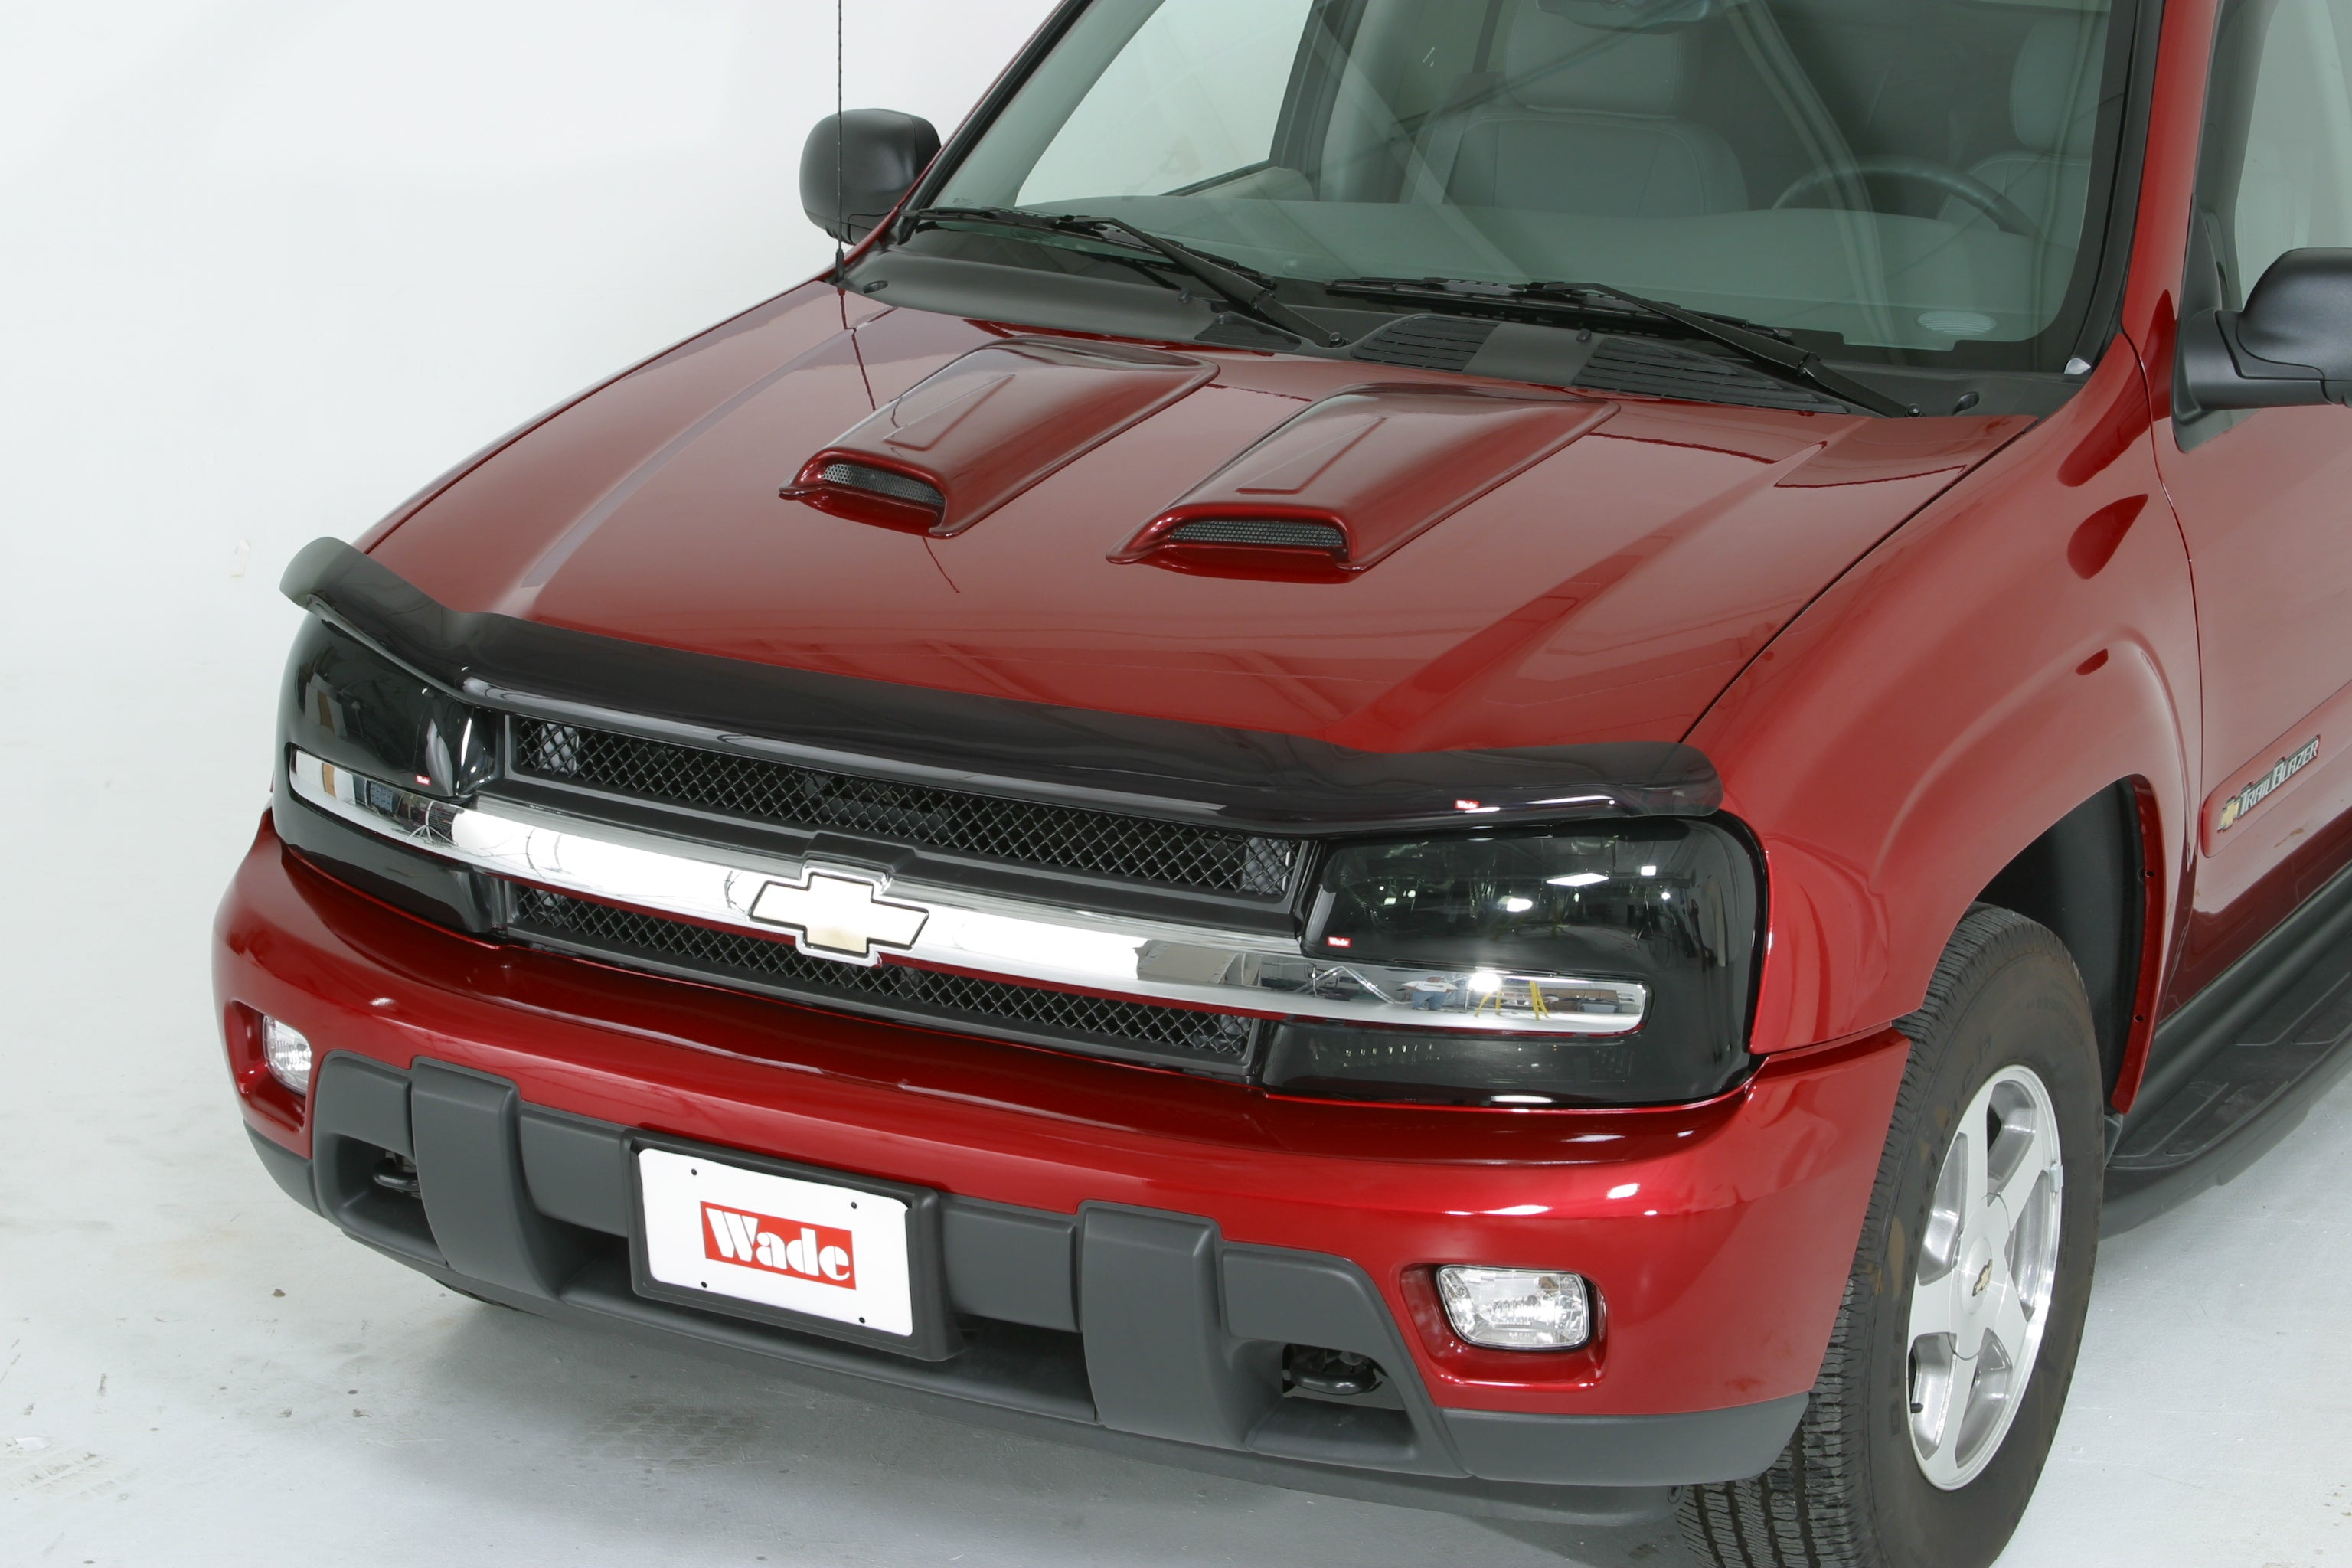 1996 Nissan Pickup 2WD (flush mount) Head Light Covers